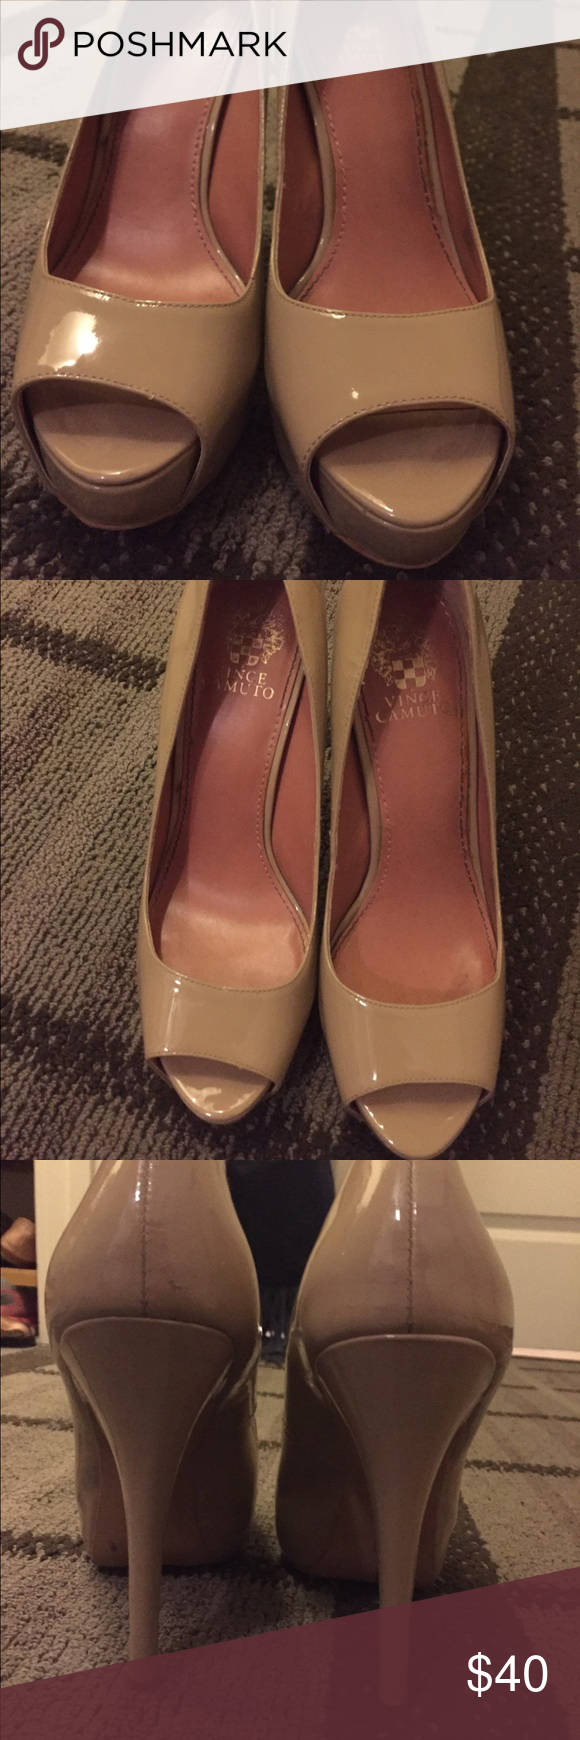 Vince Camuto shoes Almost perfect condition! So comfy and goes with anything Vince Camuto Shoes Heels